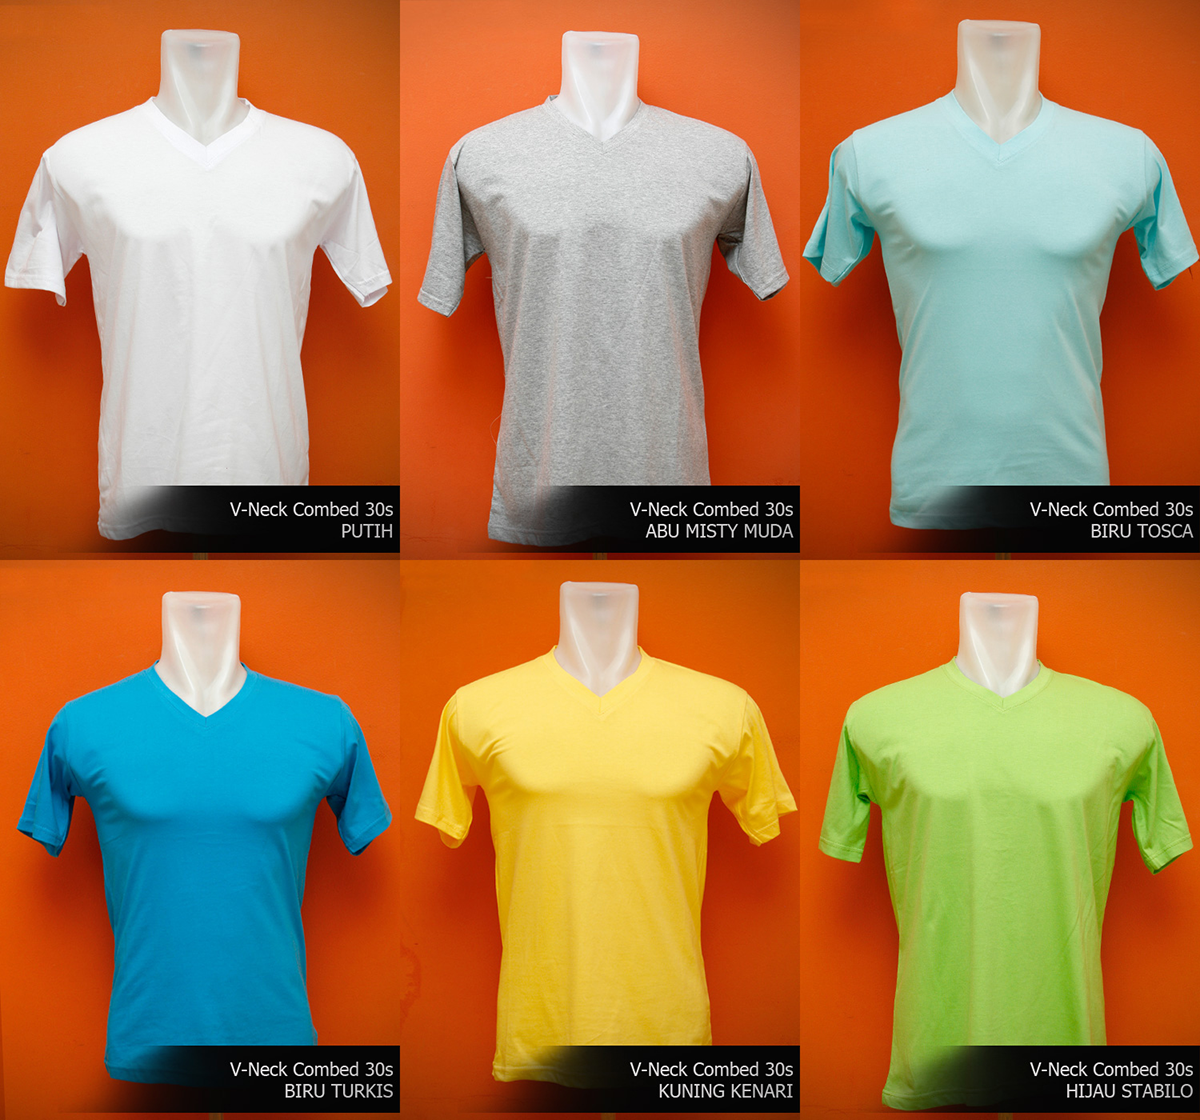 Jual Kaos V Neck Polos Oblong Cotton Combed 20 30s 24 Warna Size M Special K Tokopedia